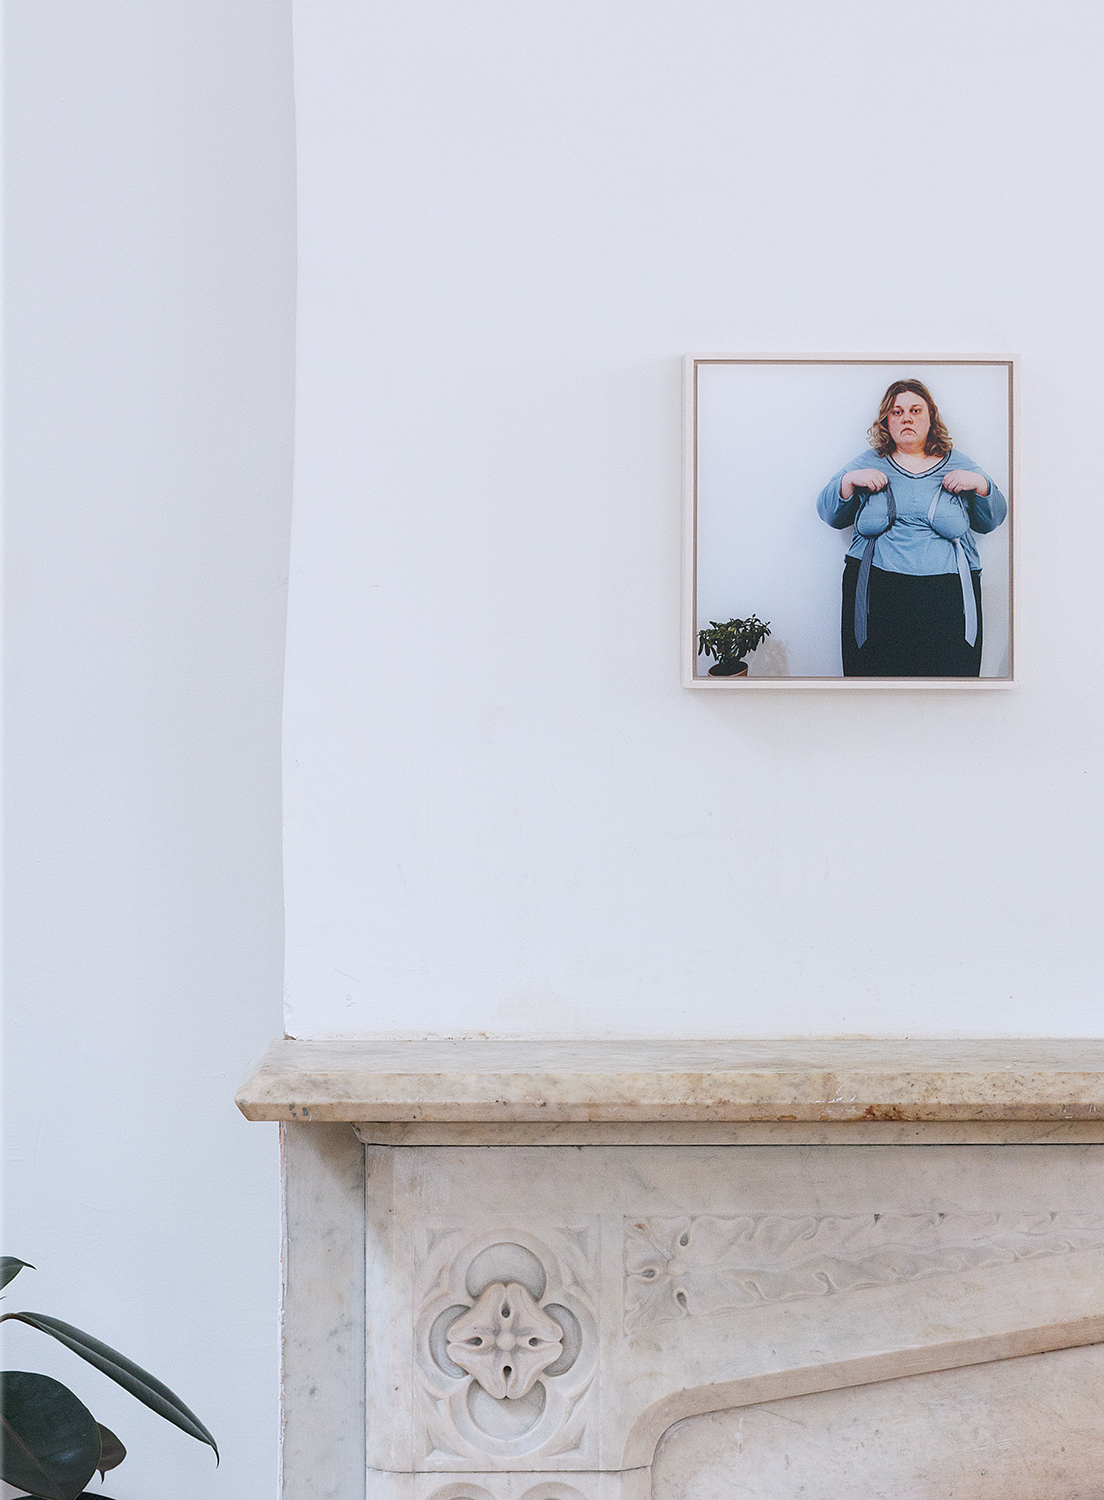 Above the mantelpiece hangs Finnish artist   Iiu Susiraja 's  self-portrait titled  Power Brokers  (2012), shot in her instantly recognizable humorous style. Susiraja recently attended a 6-month residency at the     ISCP   in New York, and this year her works have been featured in solo exhibitions both in NY and LA and a group exhibition at the  Meredith Rosen Gallery  in New York.